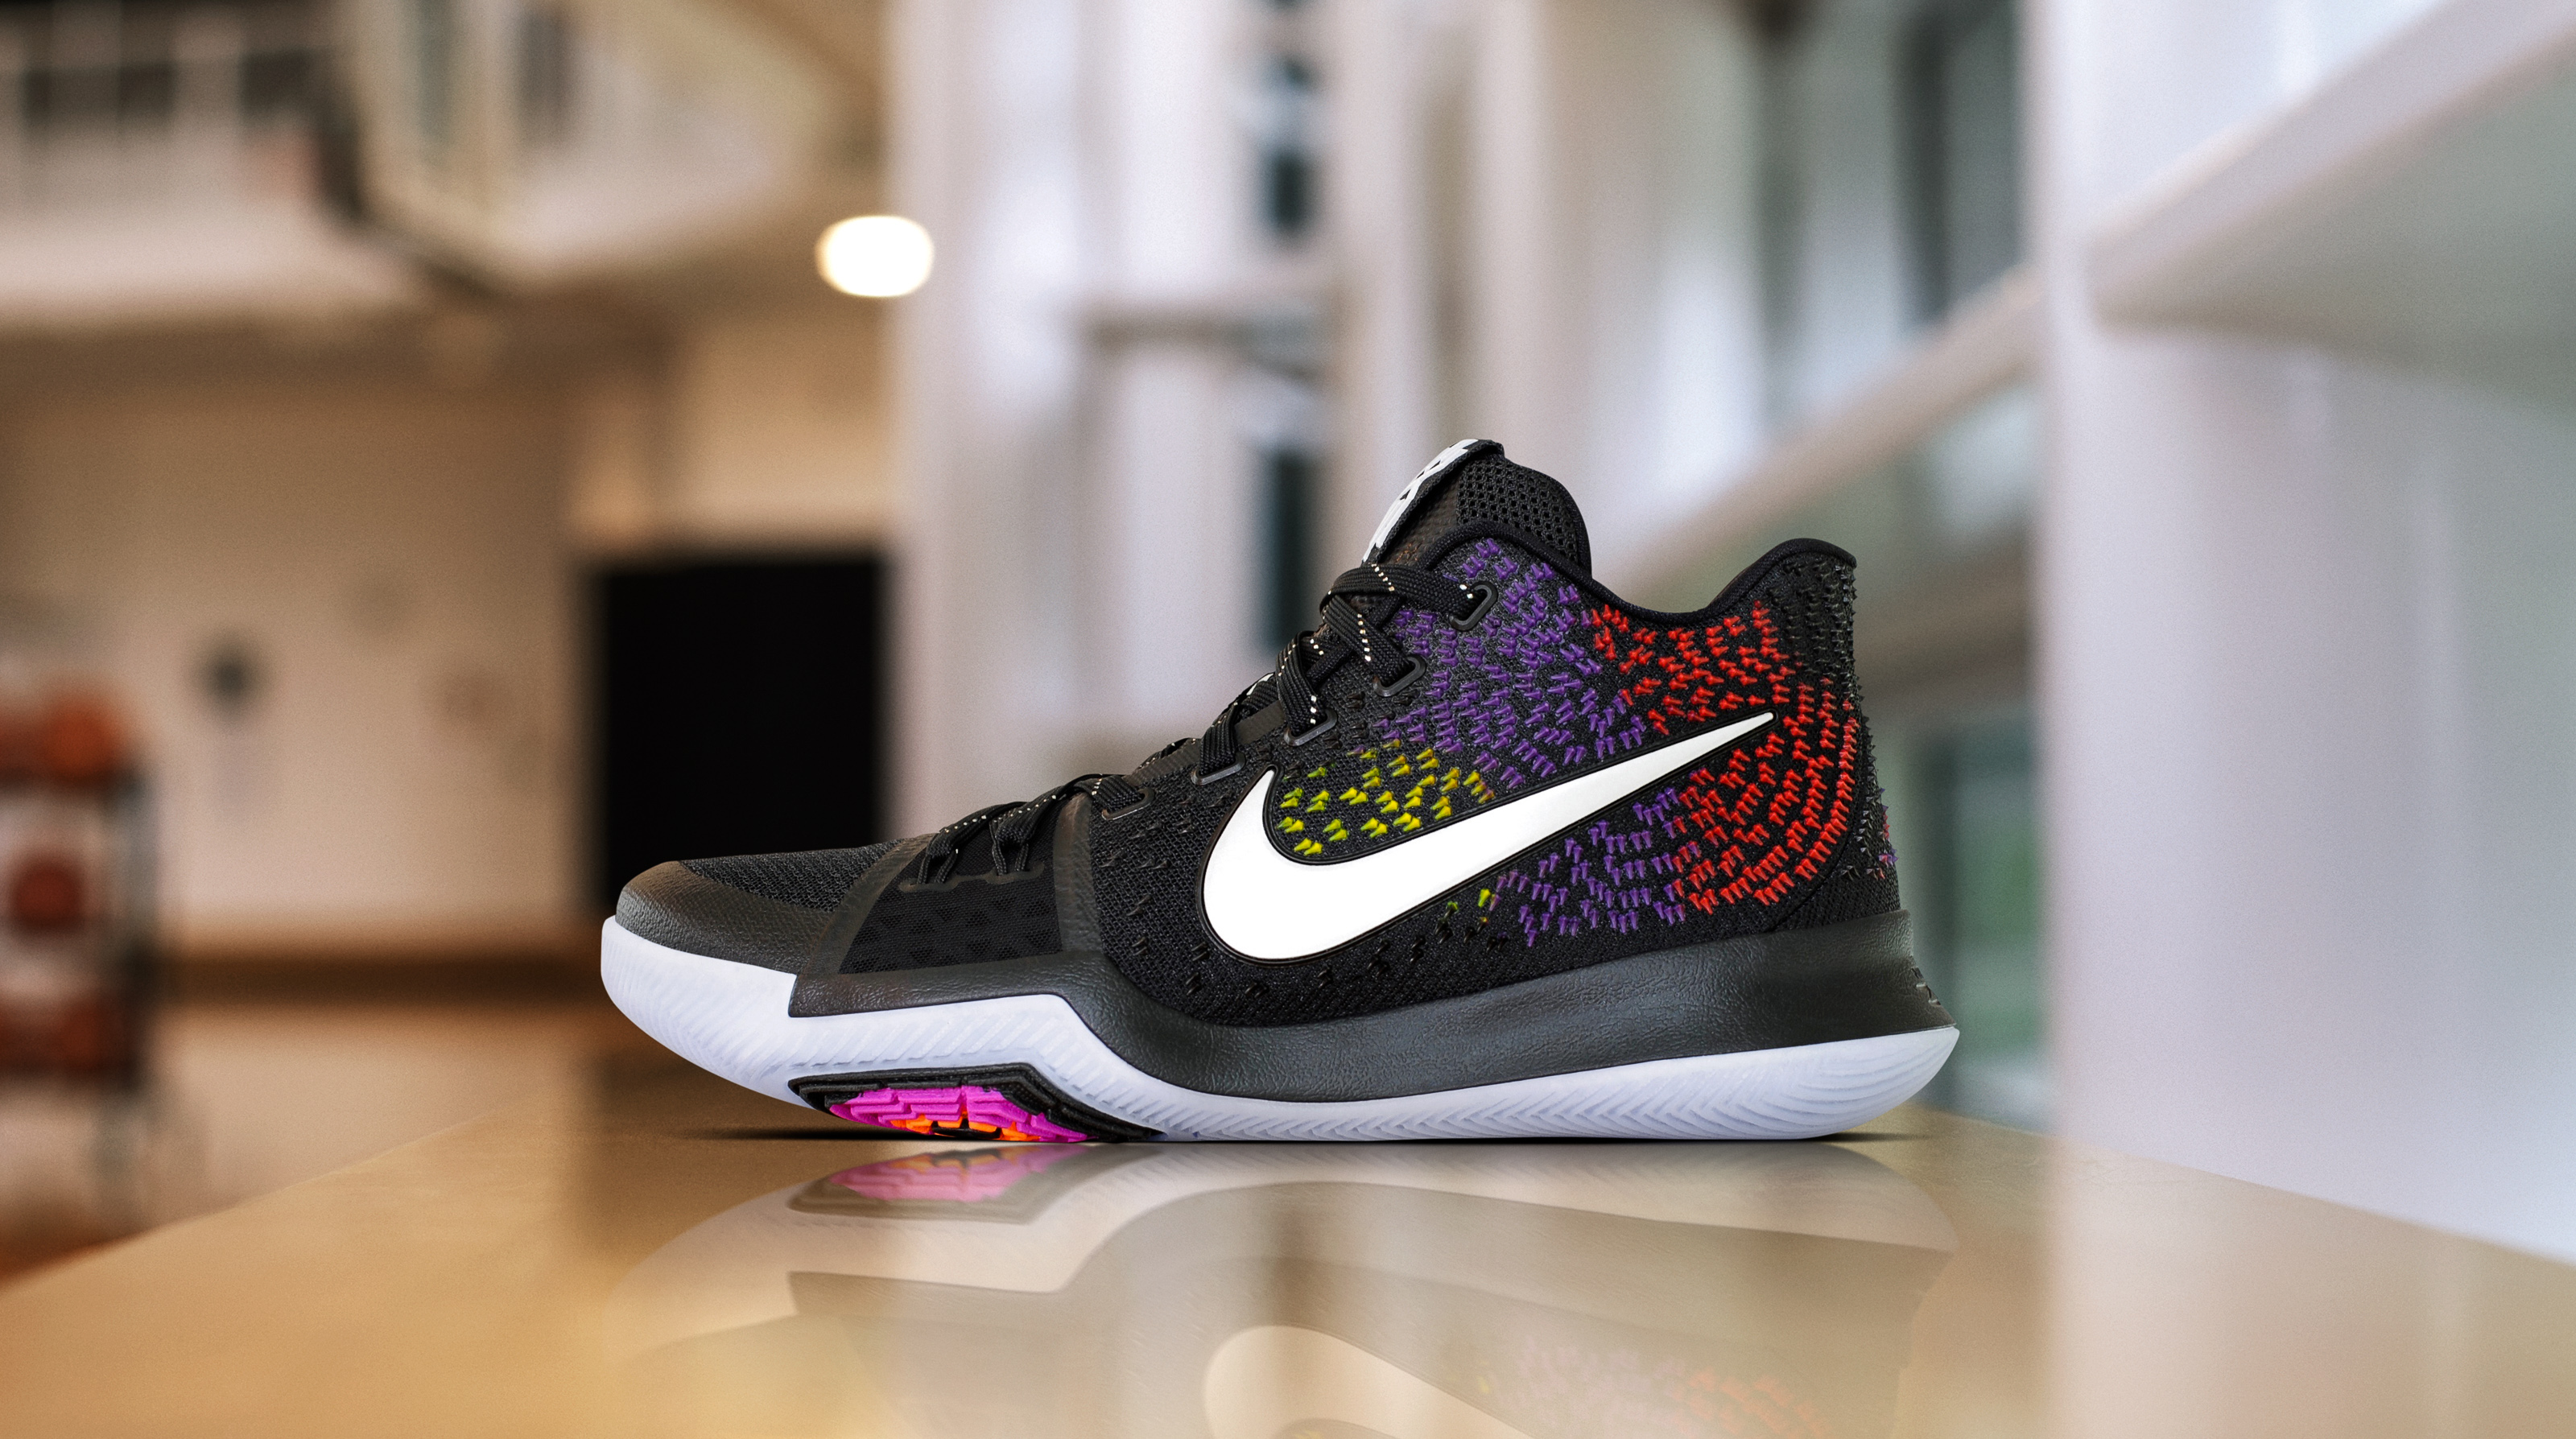 new products 247ab a2439 KYRIE 3 PE - Nike News